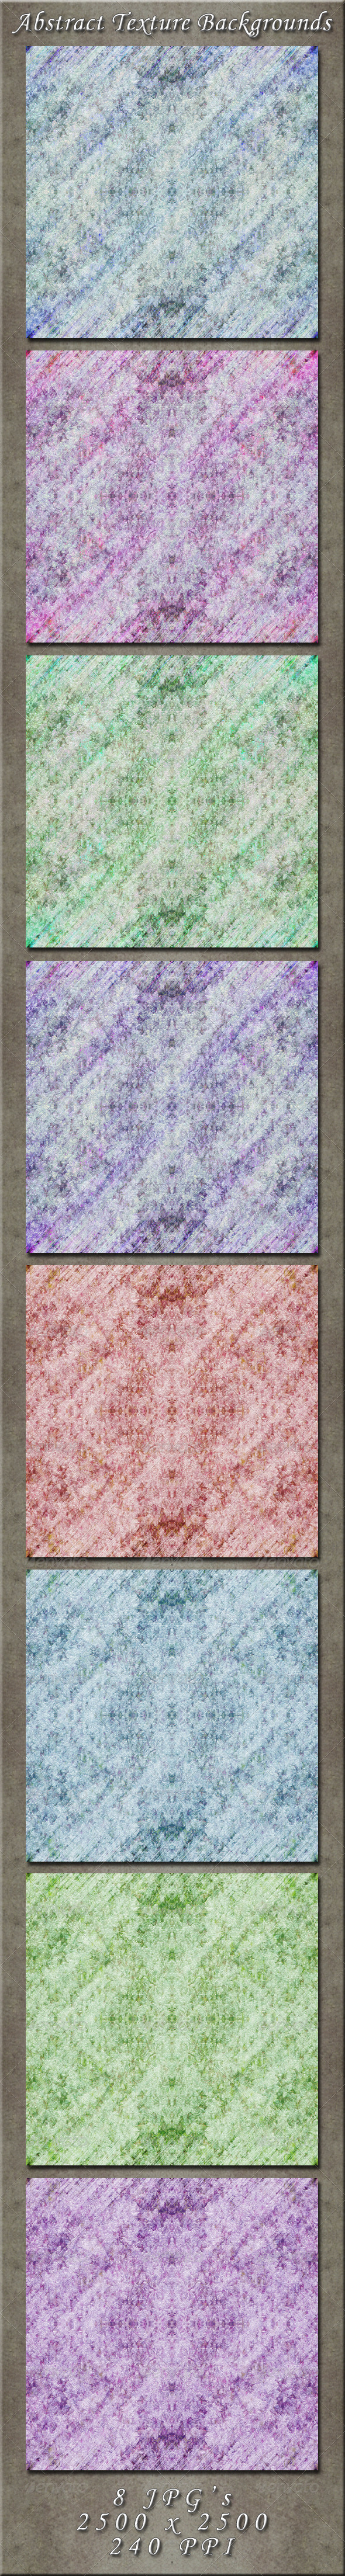 GraphicRiver Abstract Texture Backgrounds 4746964